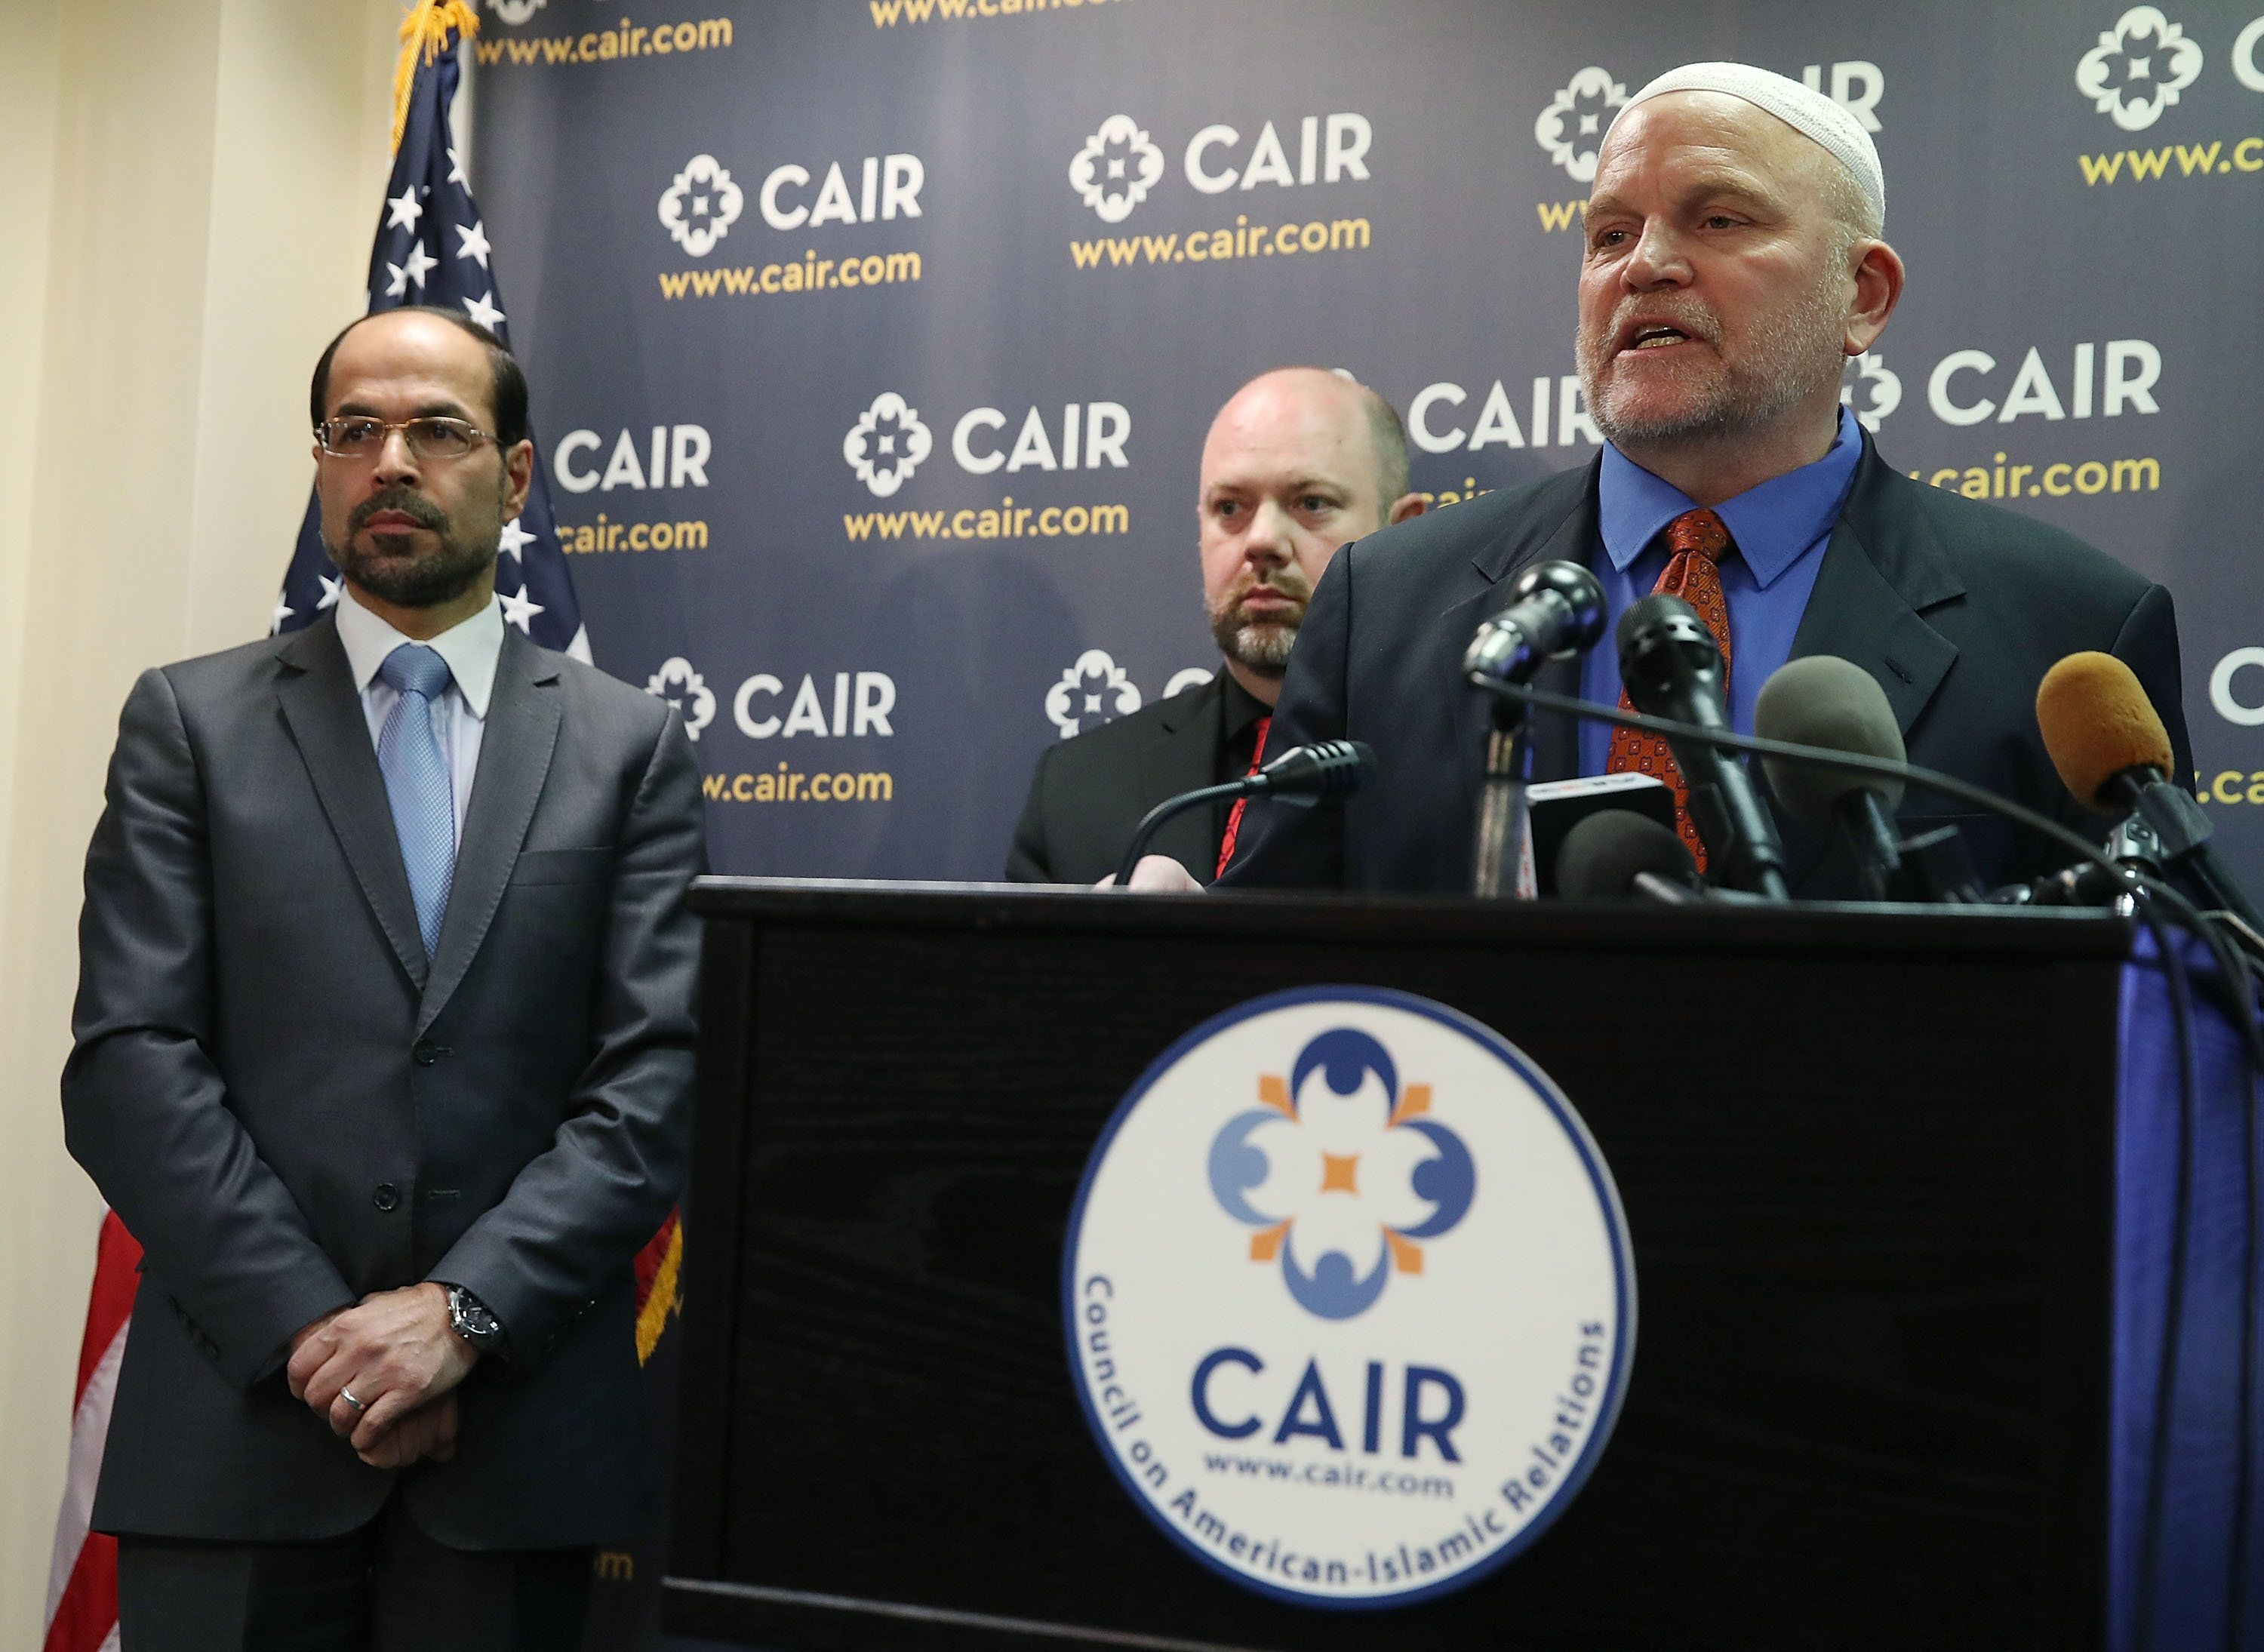 WASHINGTON, DC - MARCH 06:  Ibrahim Hooper (R), Corey Saylor (C), and Gadeir Abbas (L), of the Council on American-Islamic Relations (CAIR), speak to the media about the executive order U.S. President Donald Trump signed today about middle east travel, on March 6, 2017 in Washington, DC.  (Photo by Mark Wilson/Getty Images)